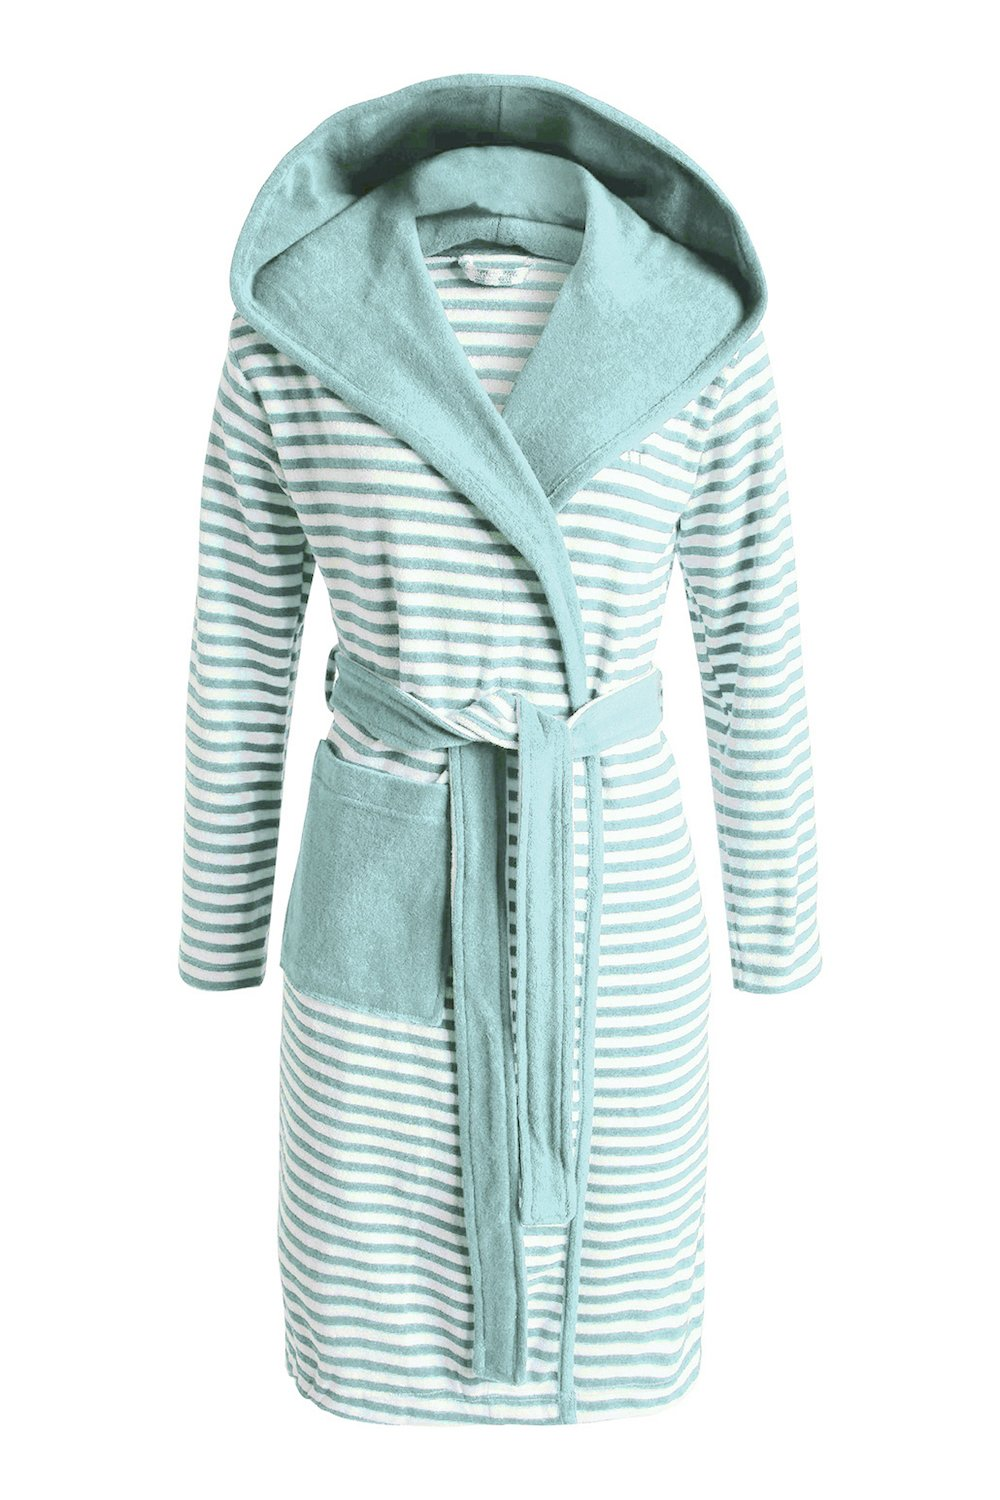 ESPRIT Bademantel Striped Hoodie   Mint   M